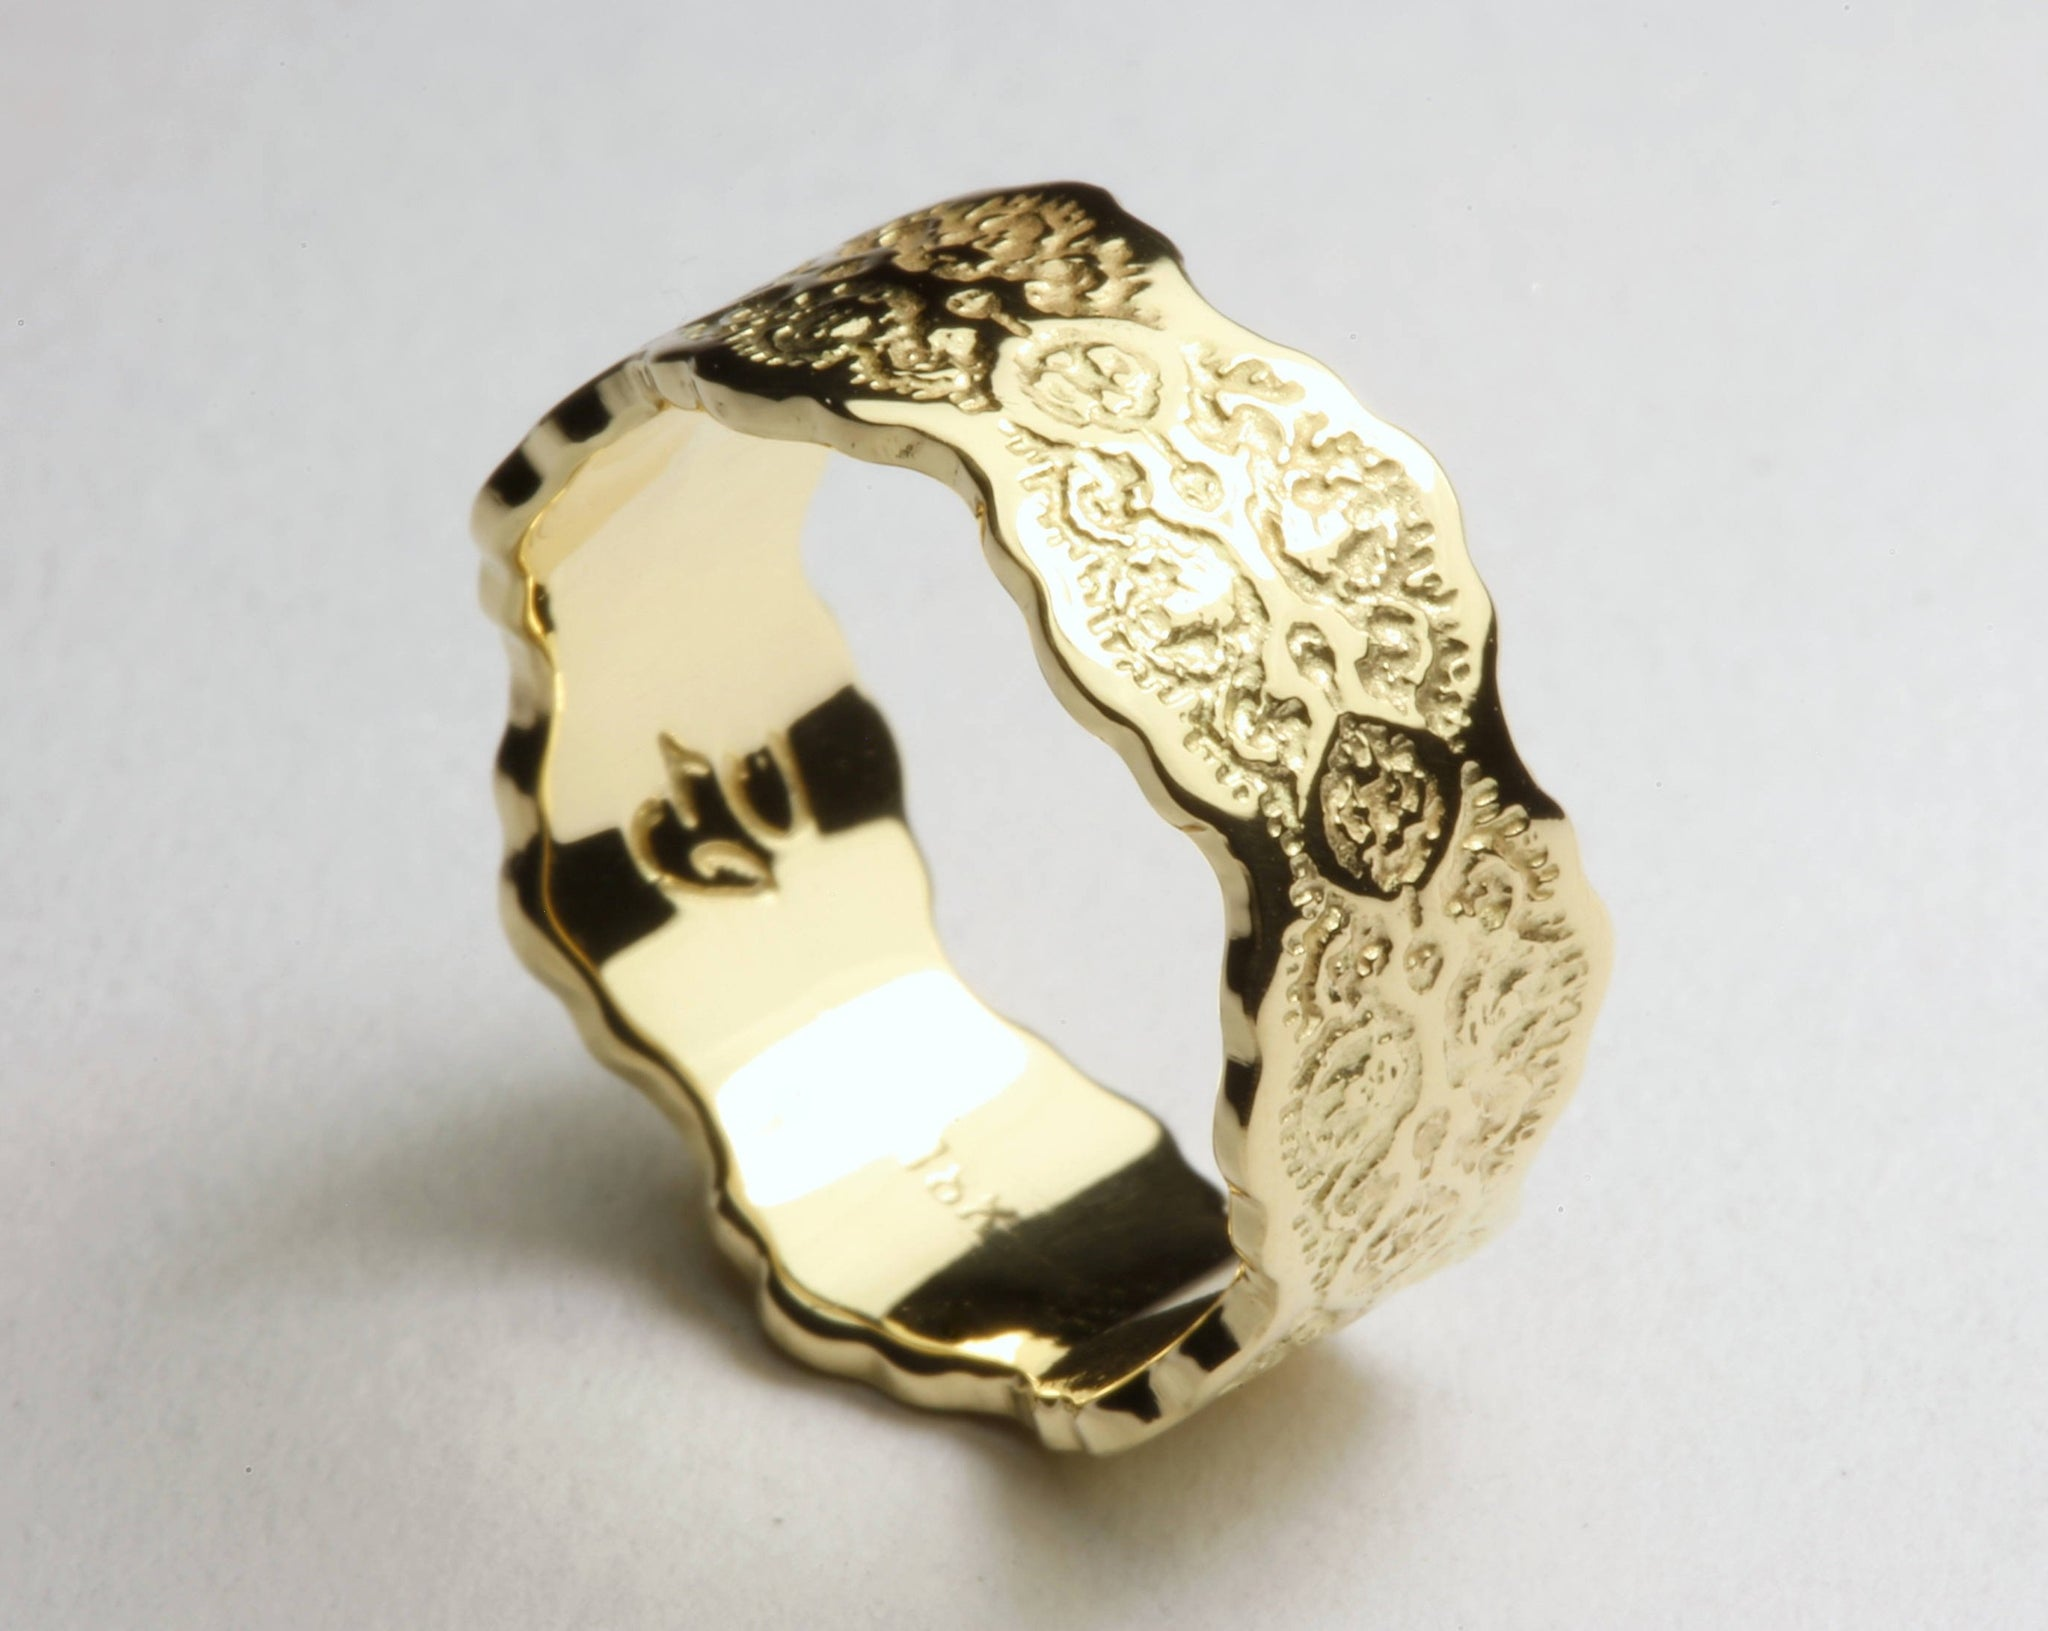 18K Gold Wedding Ring, Gold Lace Ring, Wedding Lace Ring, Wide Gold Art Deco Ring